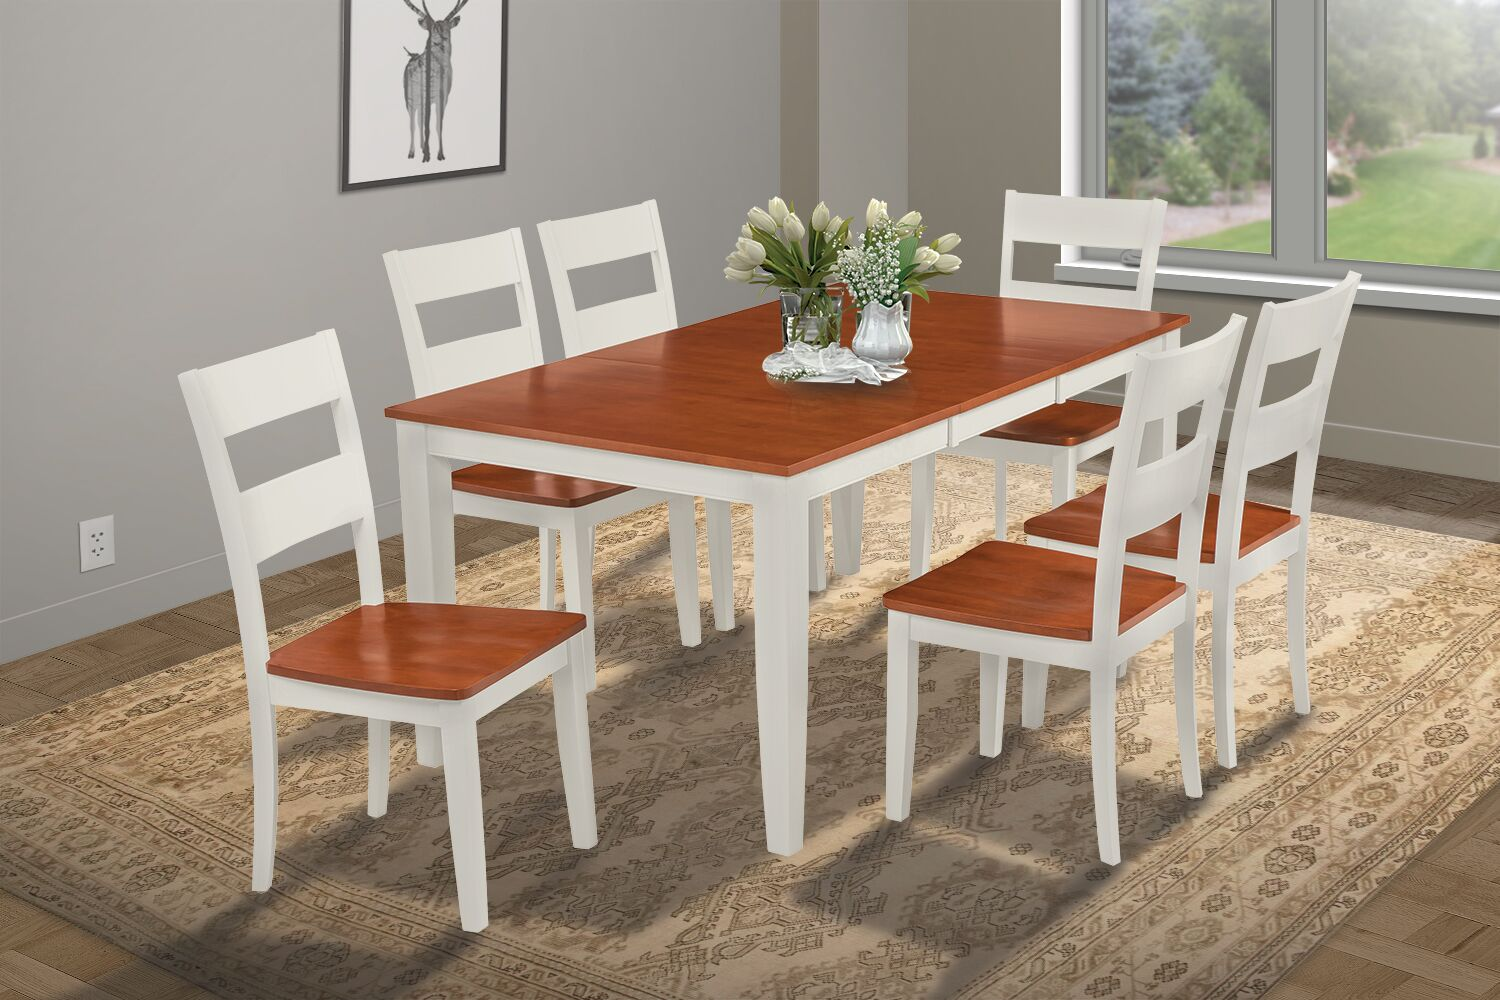 Dining Table Sets Charlestown 7 Piece HardSolid Wood Dining Set